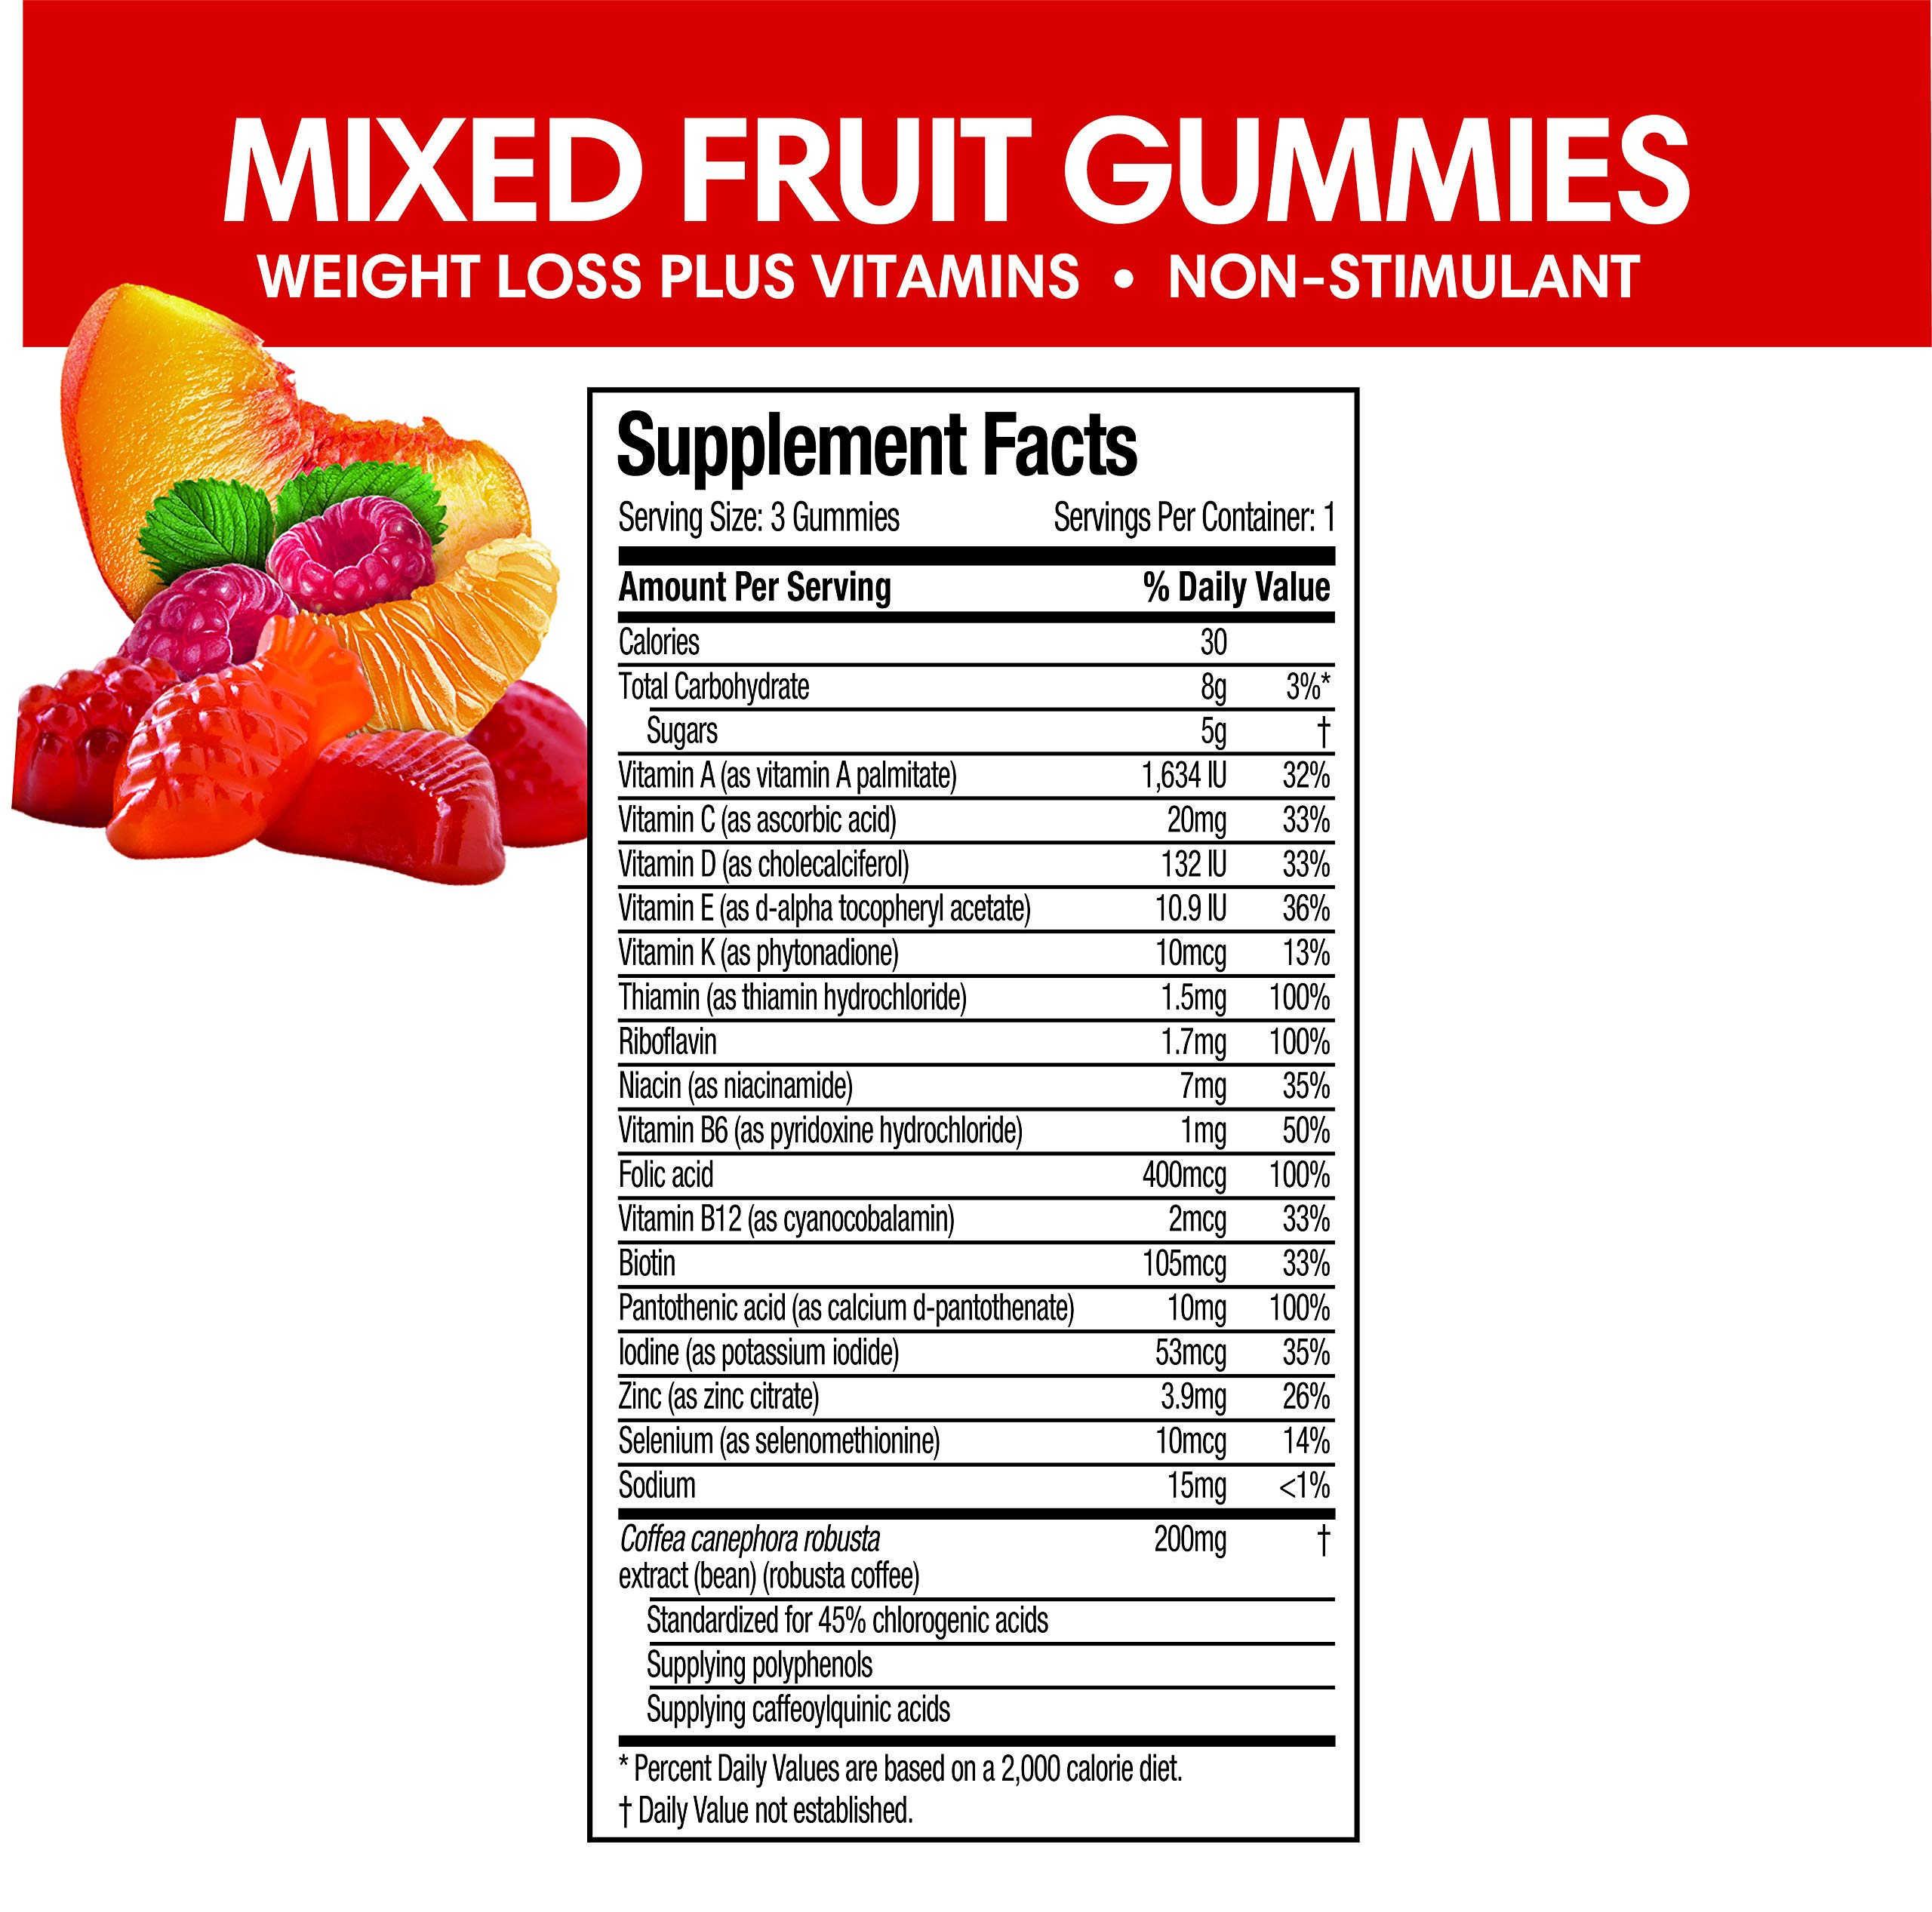 Health Shopping Hydroxycut Non-Stimulant Weight Loss Mixed Fruit Gummies, 90 Count